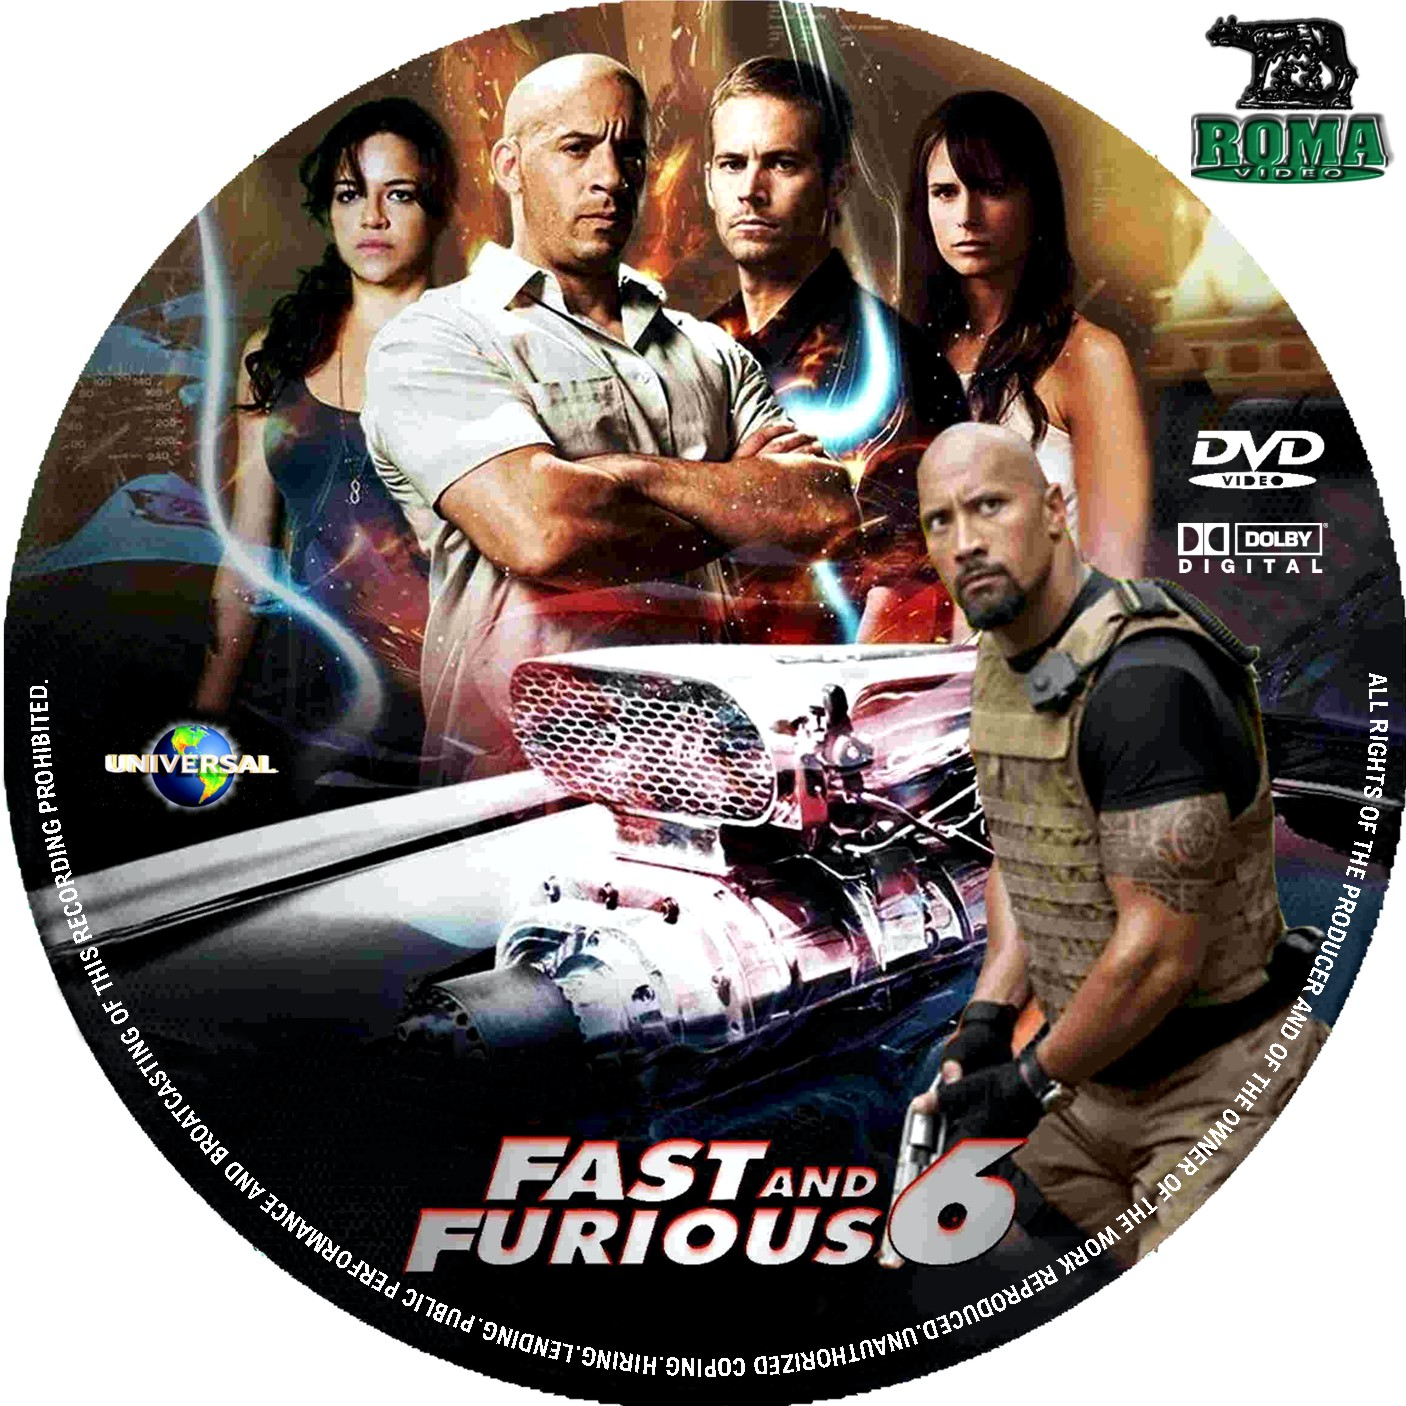 covers box sk fast and furious 6 2013 high quality. Black Bedroom Furniture Sets. Home Design Ideas